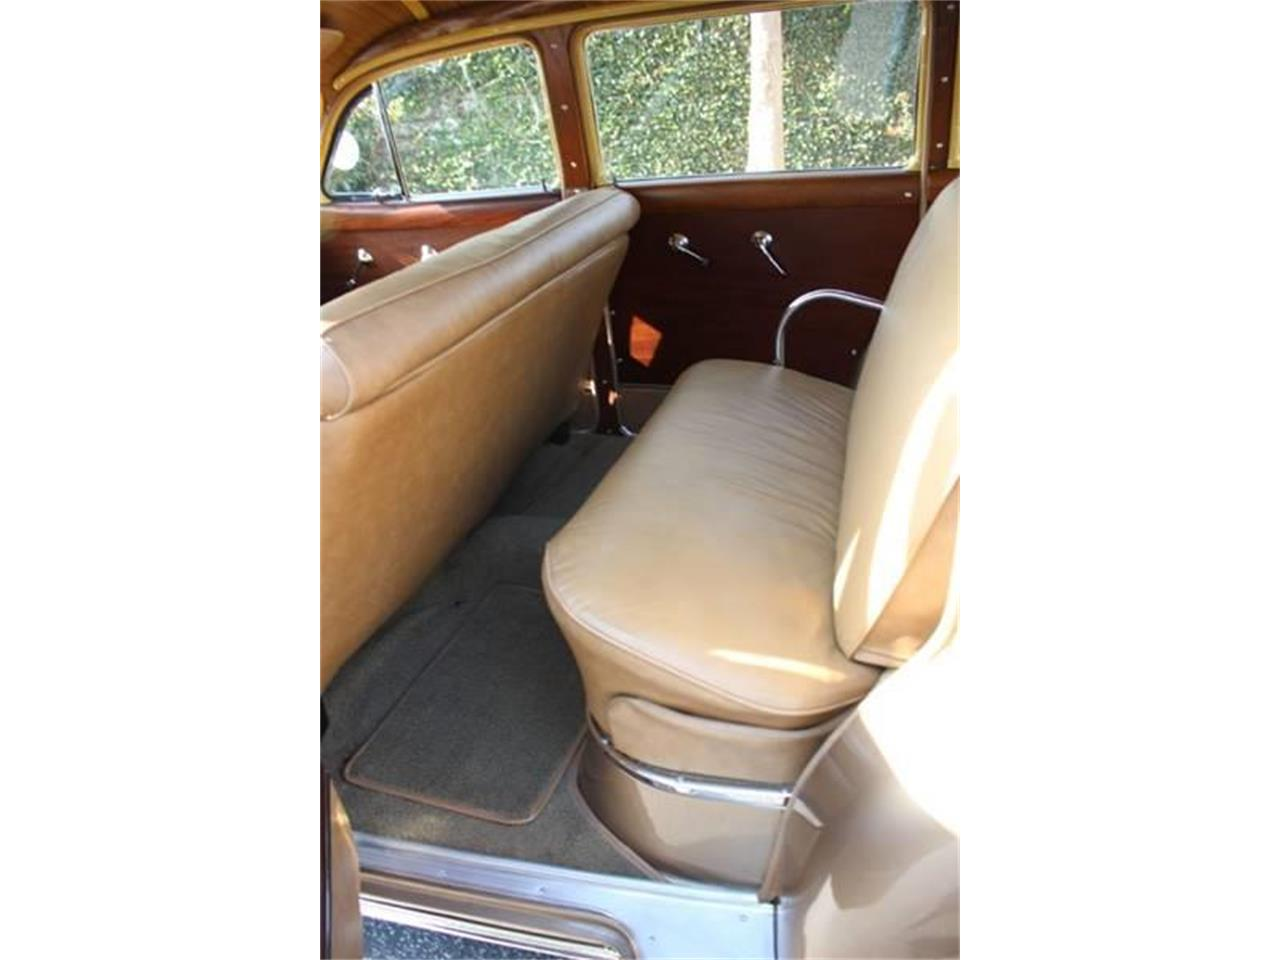 1950 Chevrolet Styleline Deluxe for sale in La Verne, CA – photo 29